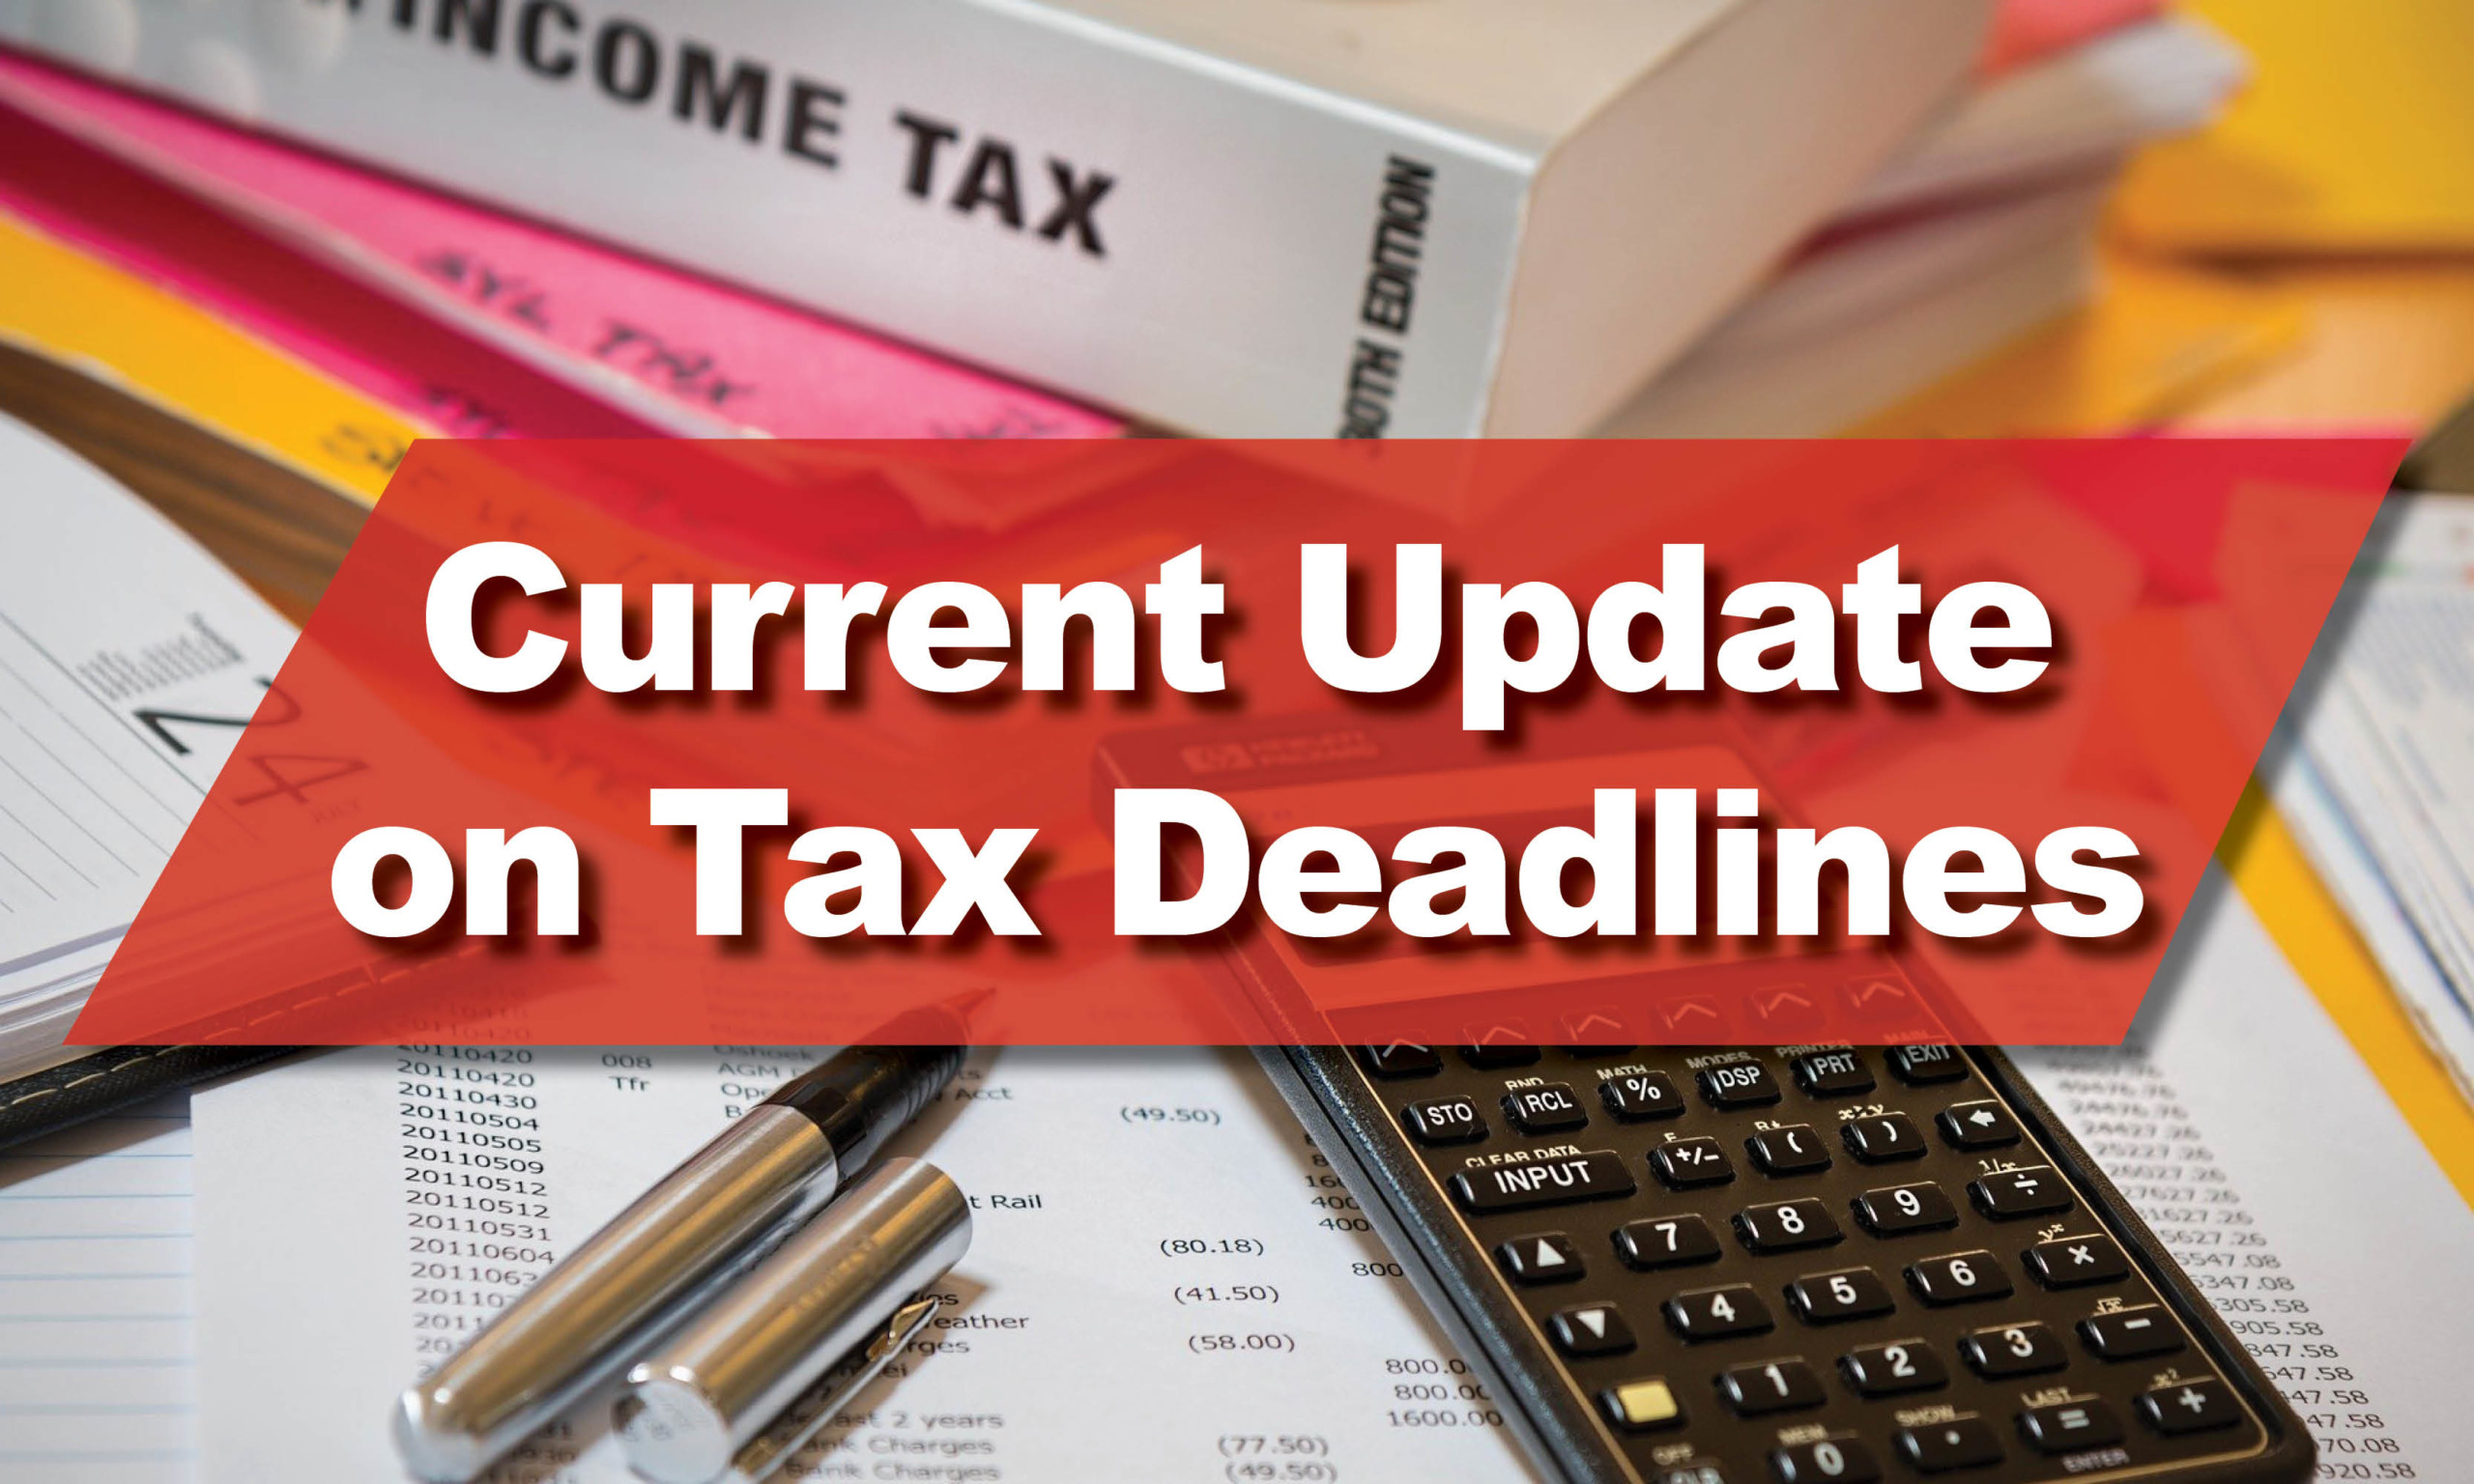 Current Update on Tax Deadlines